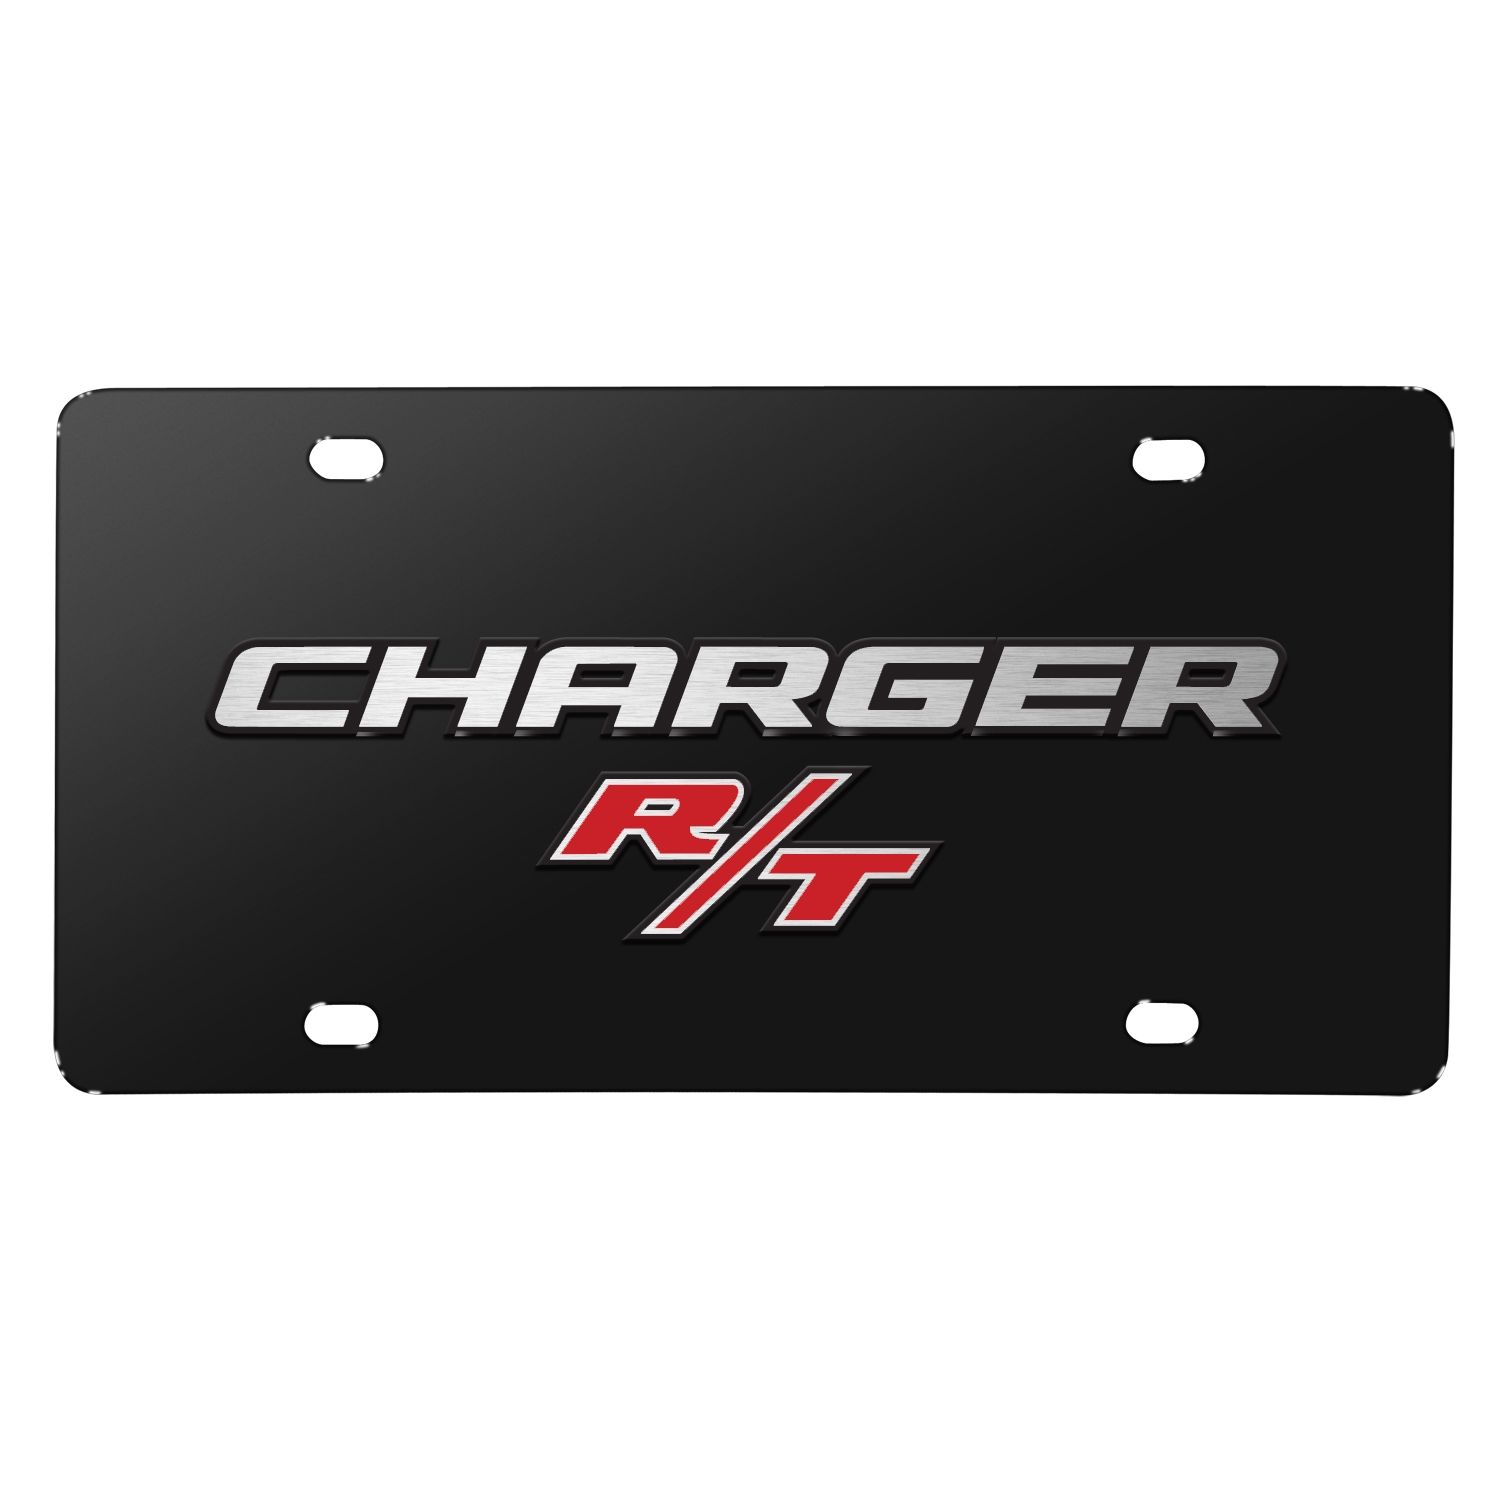 Dodge Charger R/T 3D Logo on Black Stainless Steel License Plate